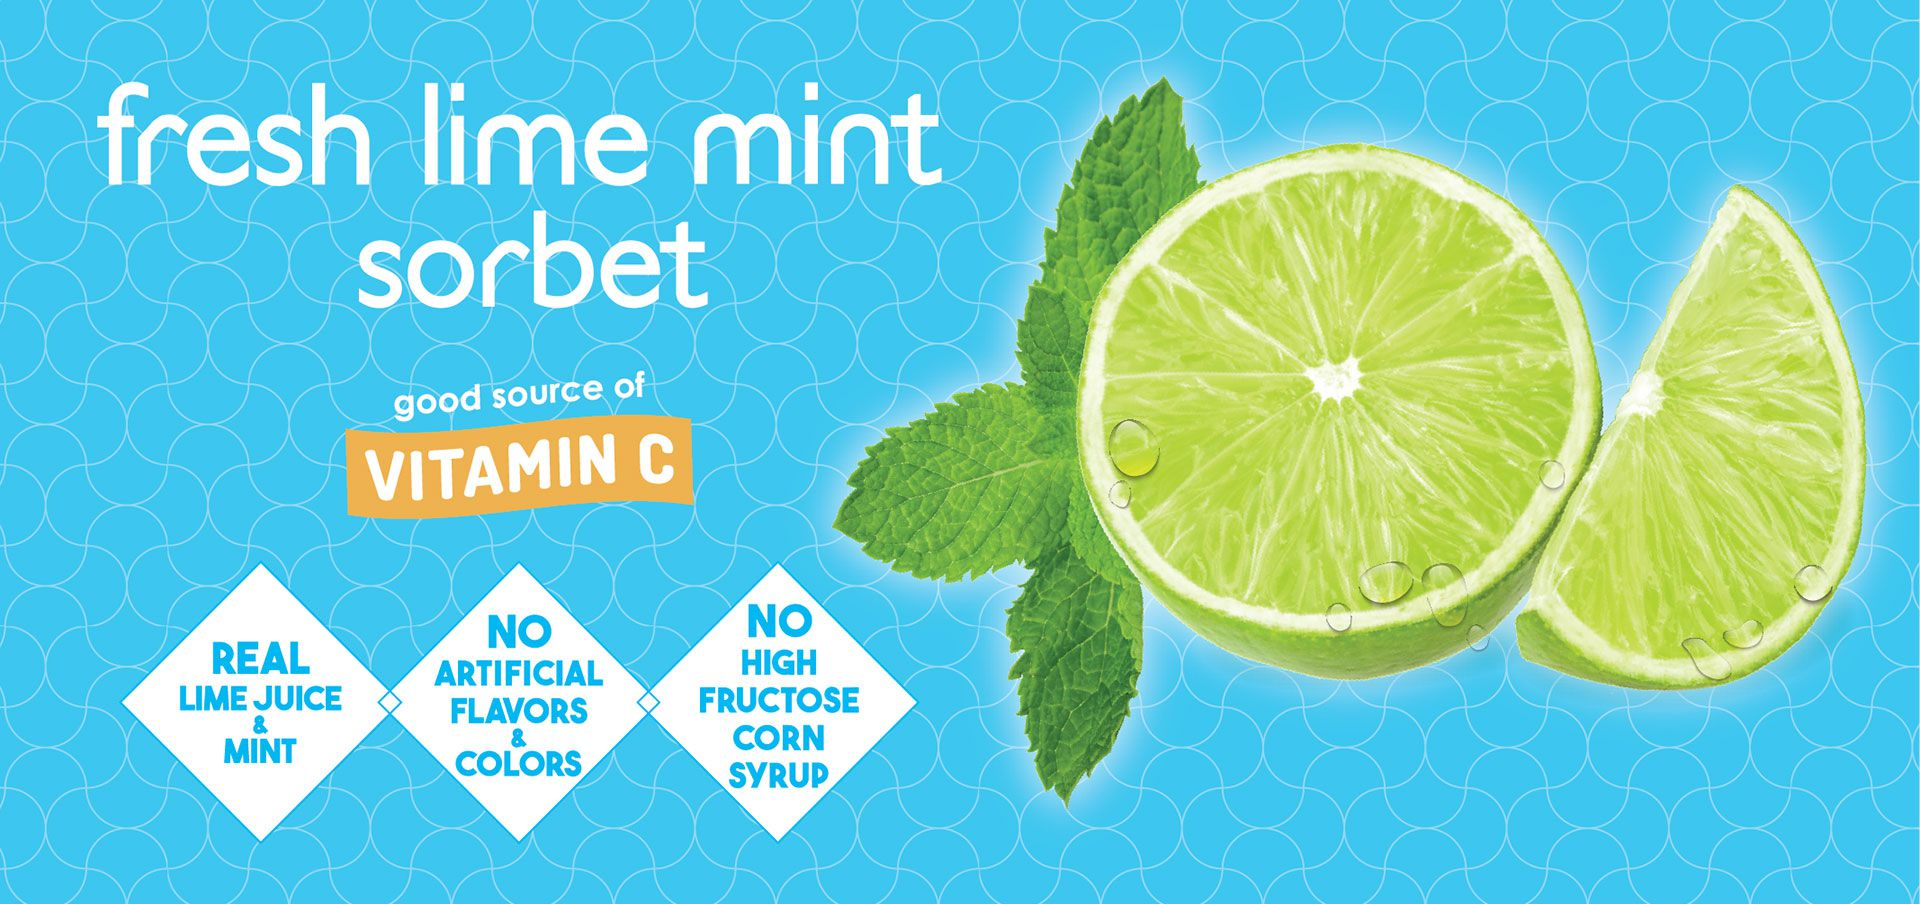 fresh lime mint sorbet label image